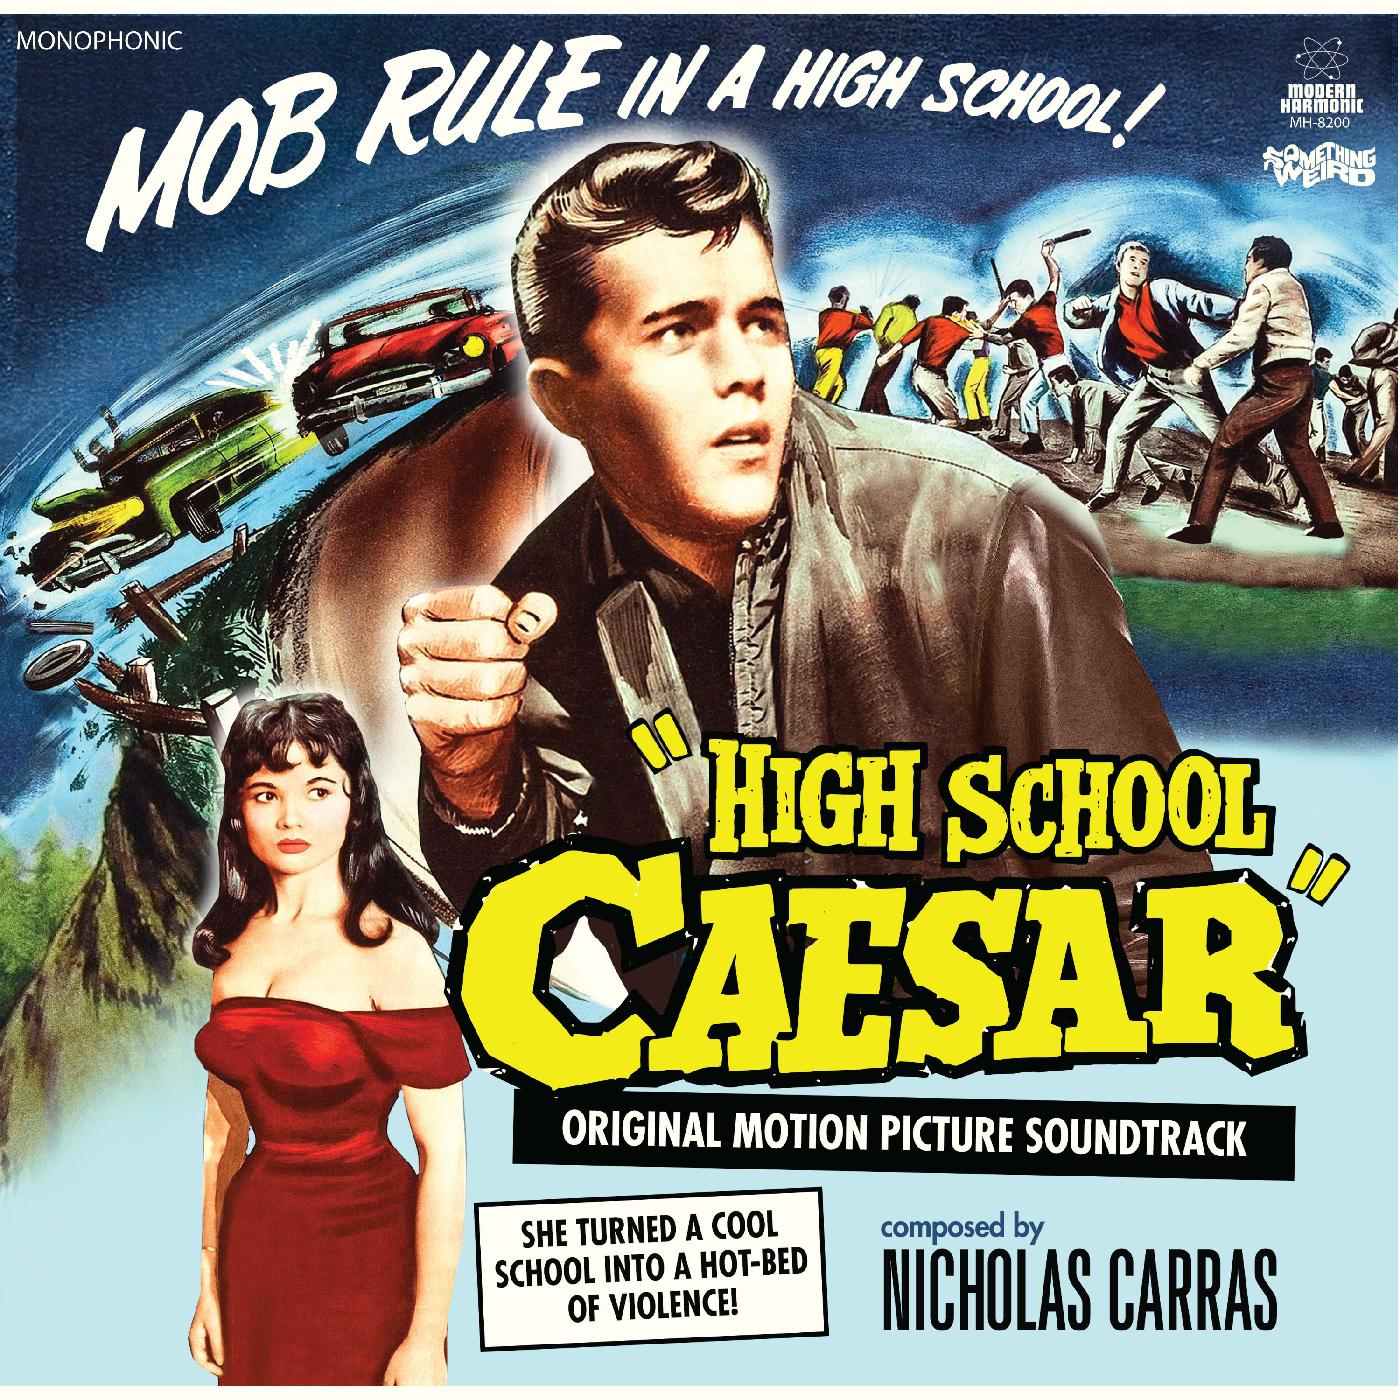 Carras, Nicholas - High School Caesar - Original Motion Picture Soundtrack -  LP + DVD